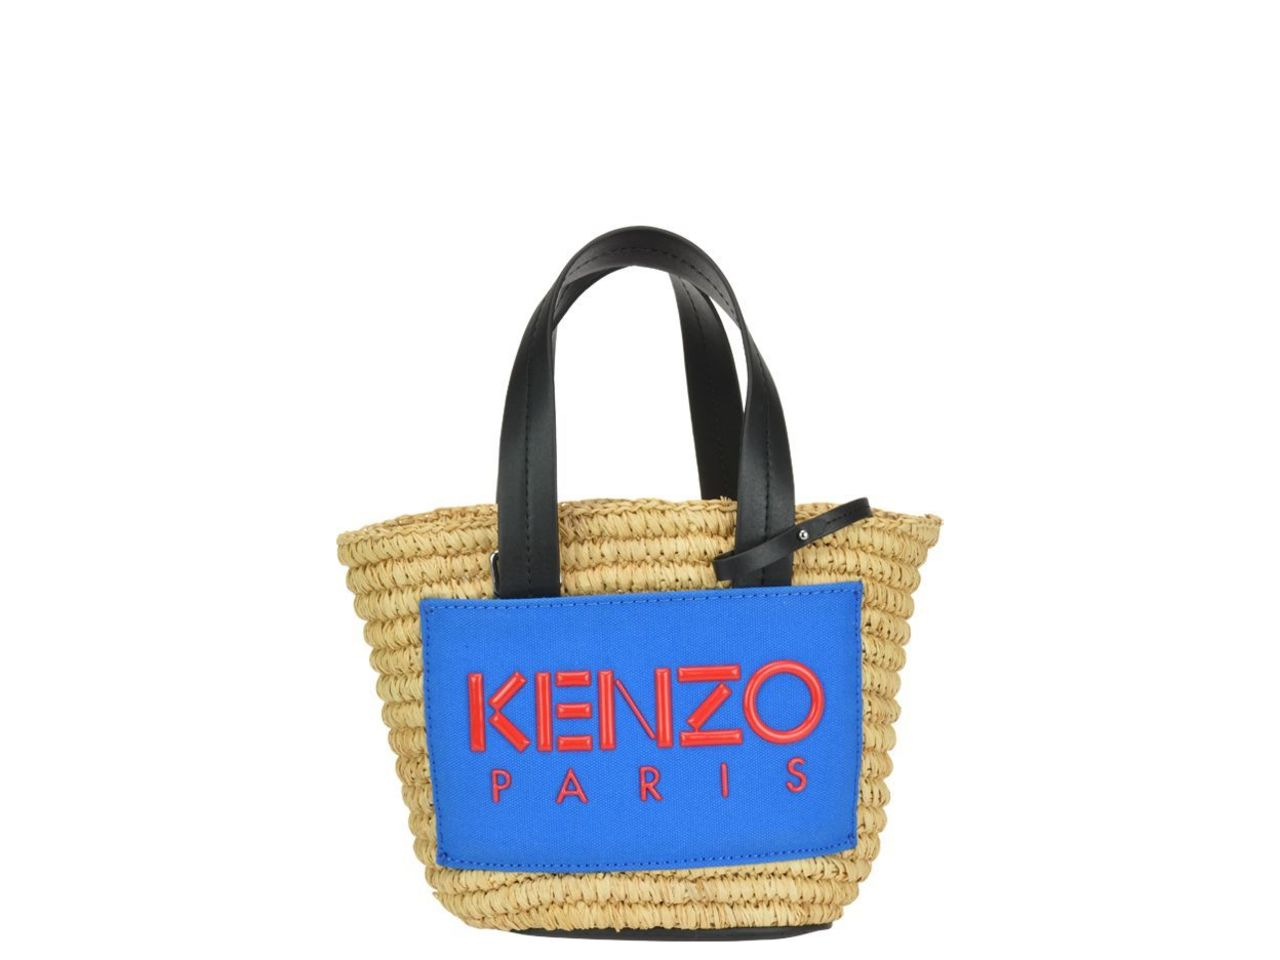 Kenzo Kenzo Paris Shopping Bag